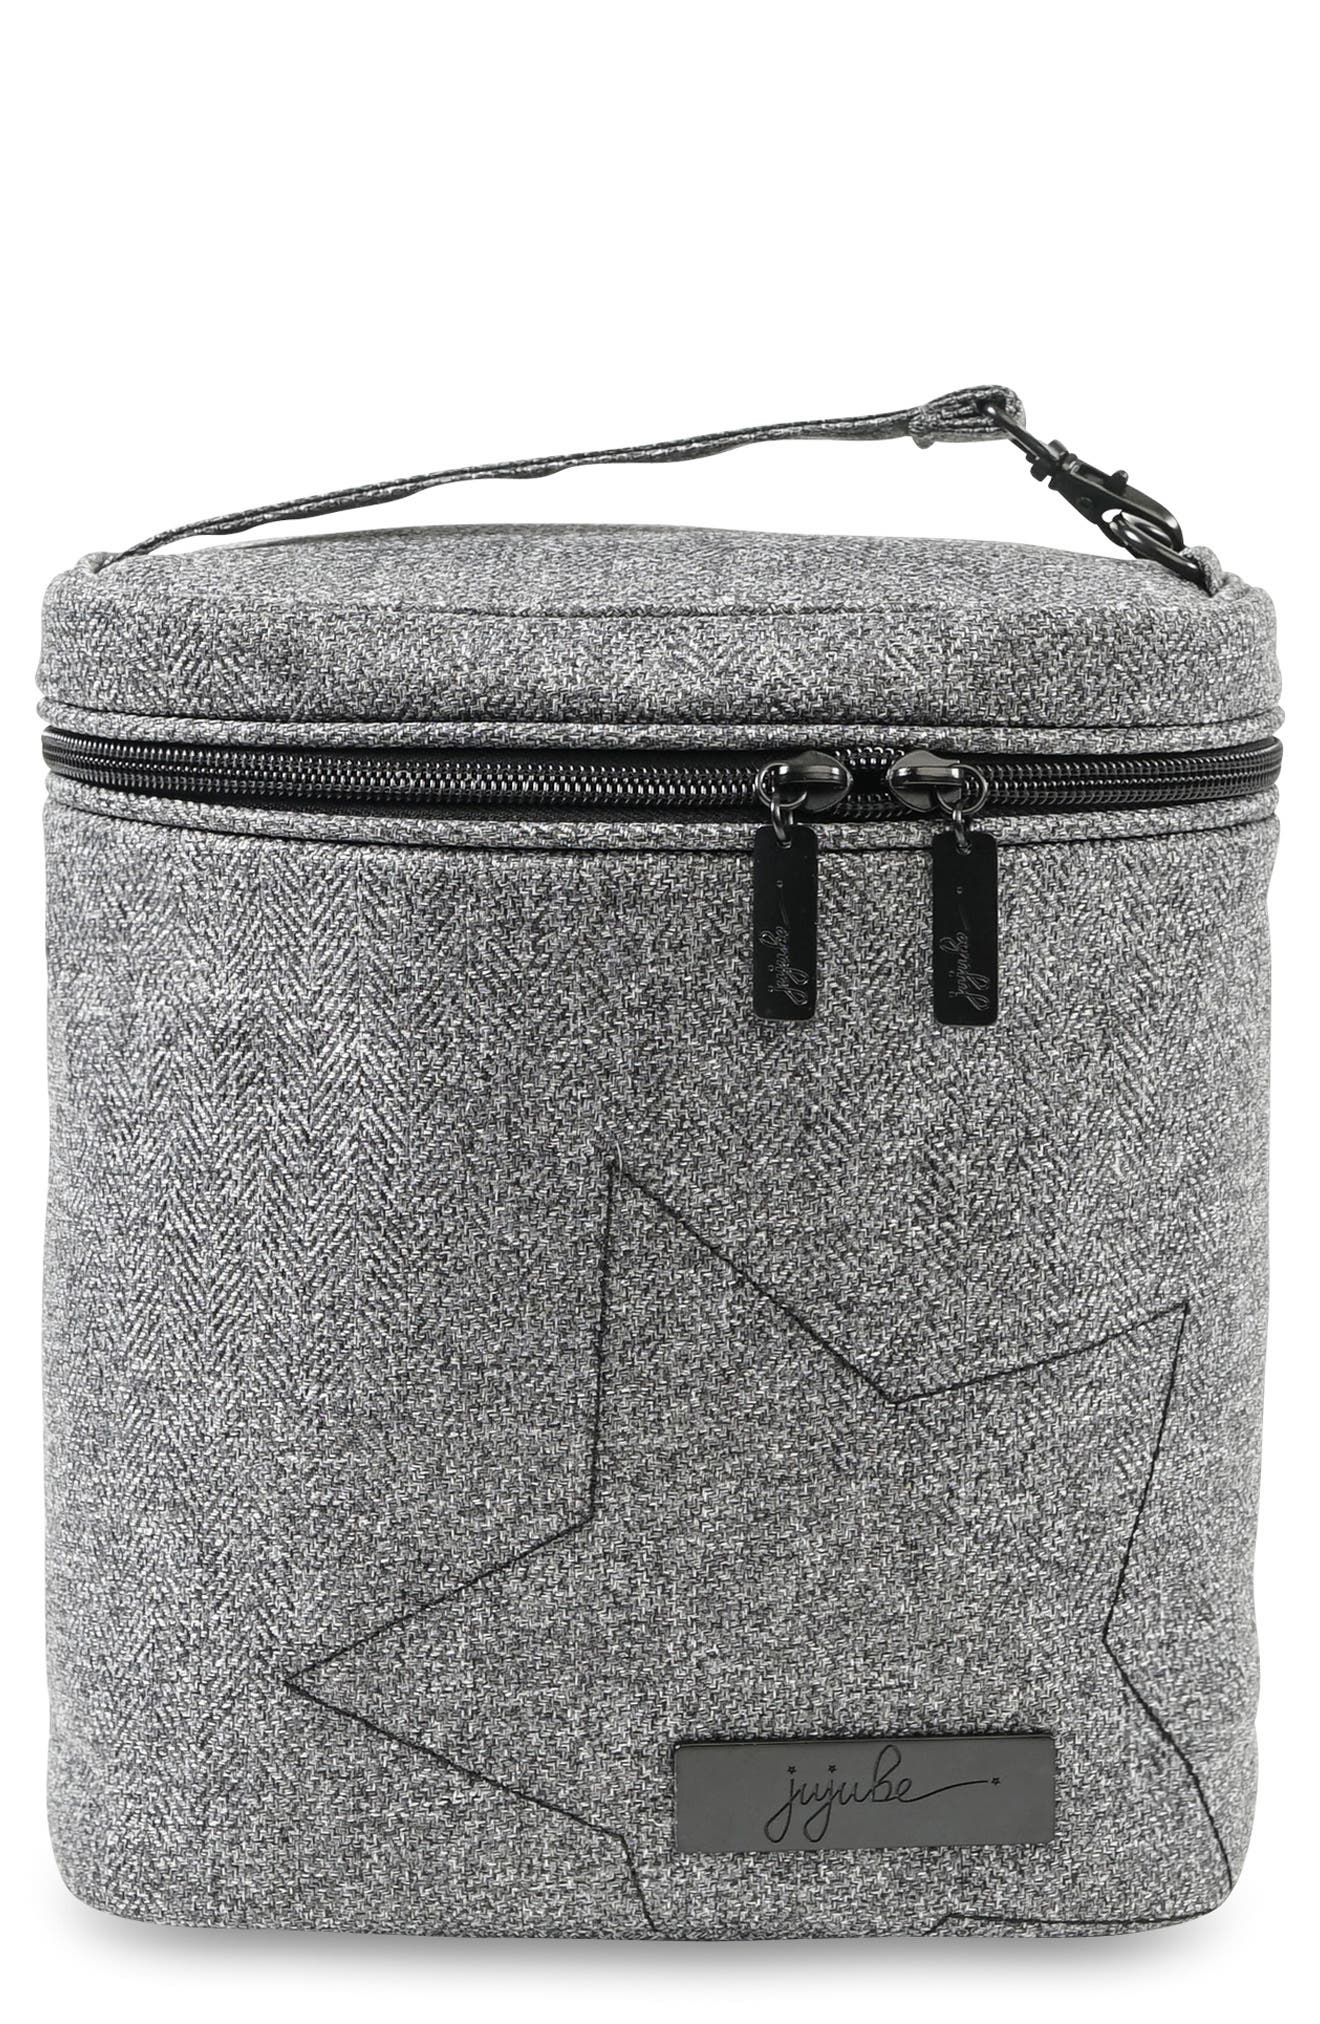 'Fuel Cell - Onyx Collection' Lunch Bag,                             Main thumbnail 1, color,                             GRAY MATTER